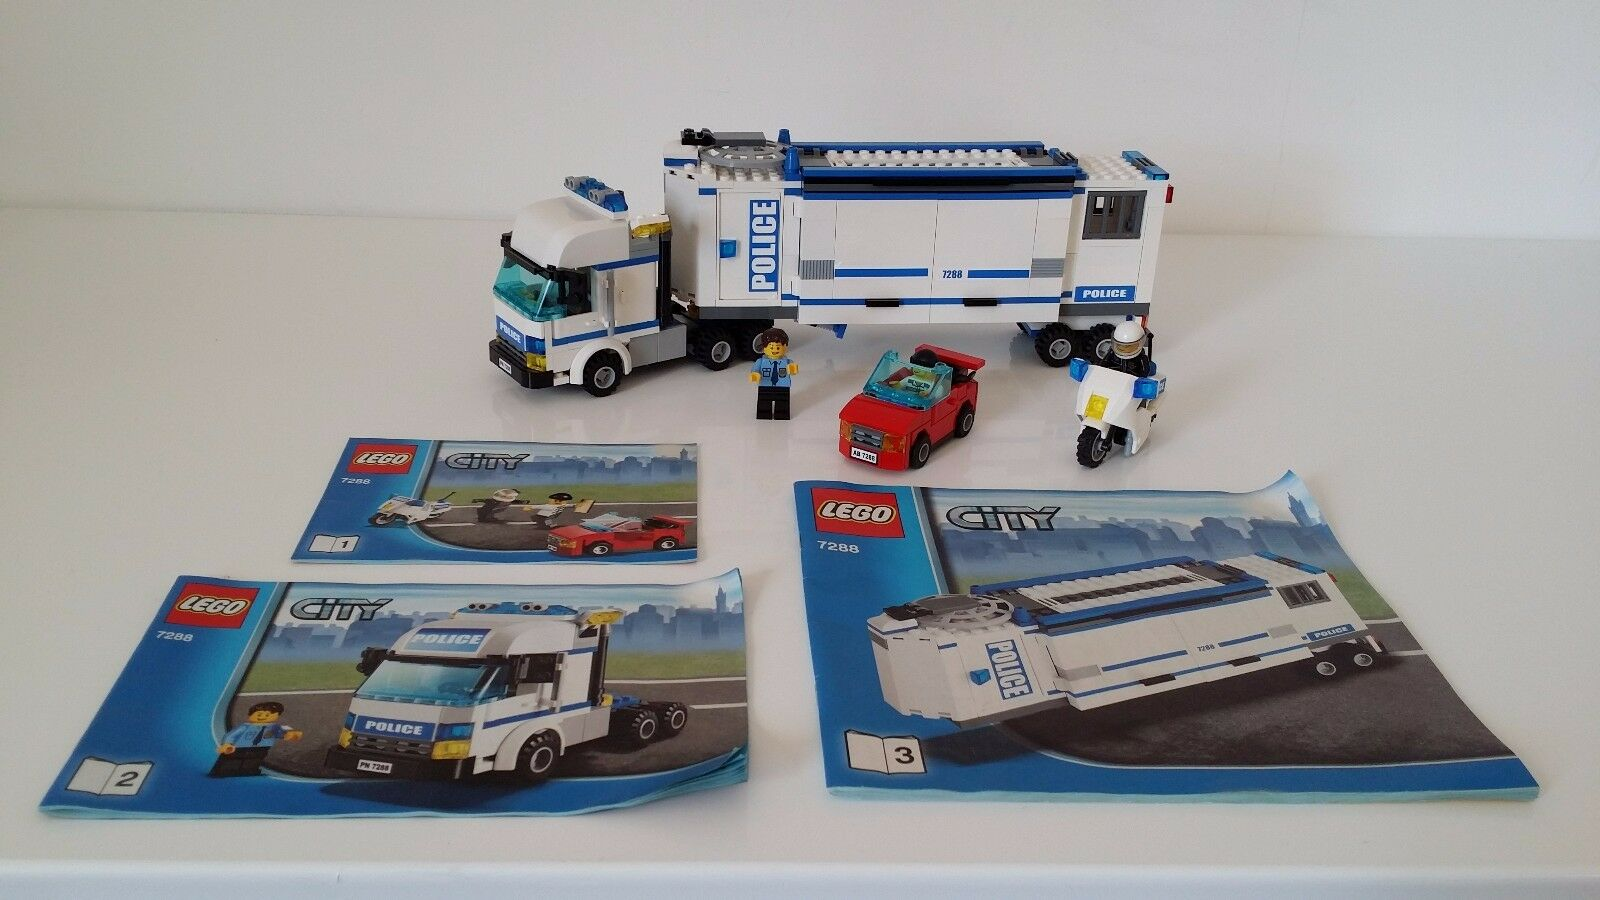 Lego Mobile Police Unit 7288 complete with 3 MiniFigures Car & Police Motorbike